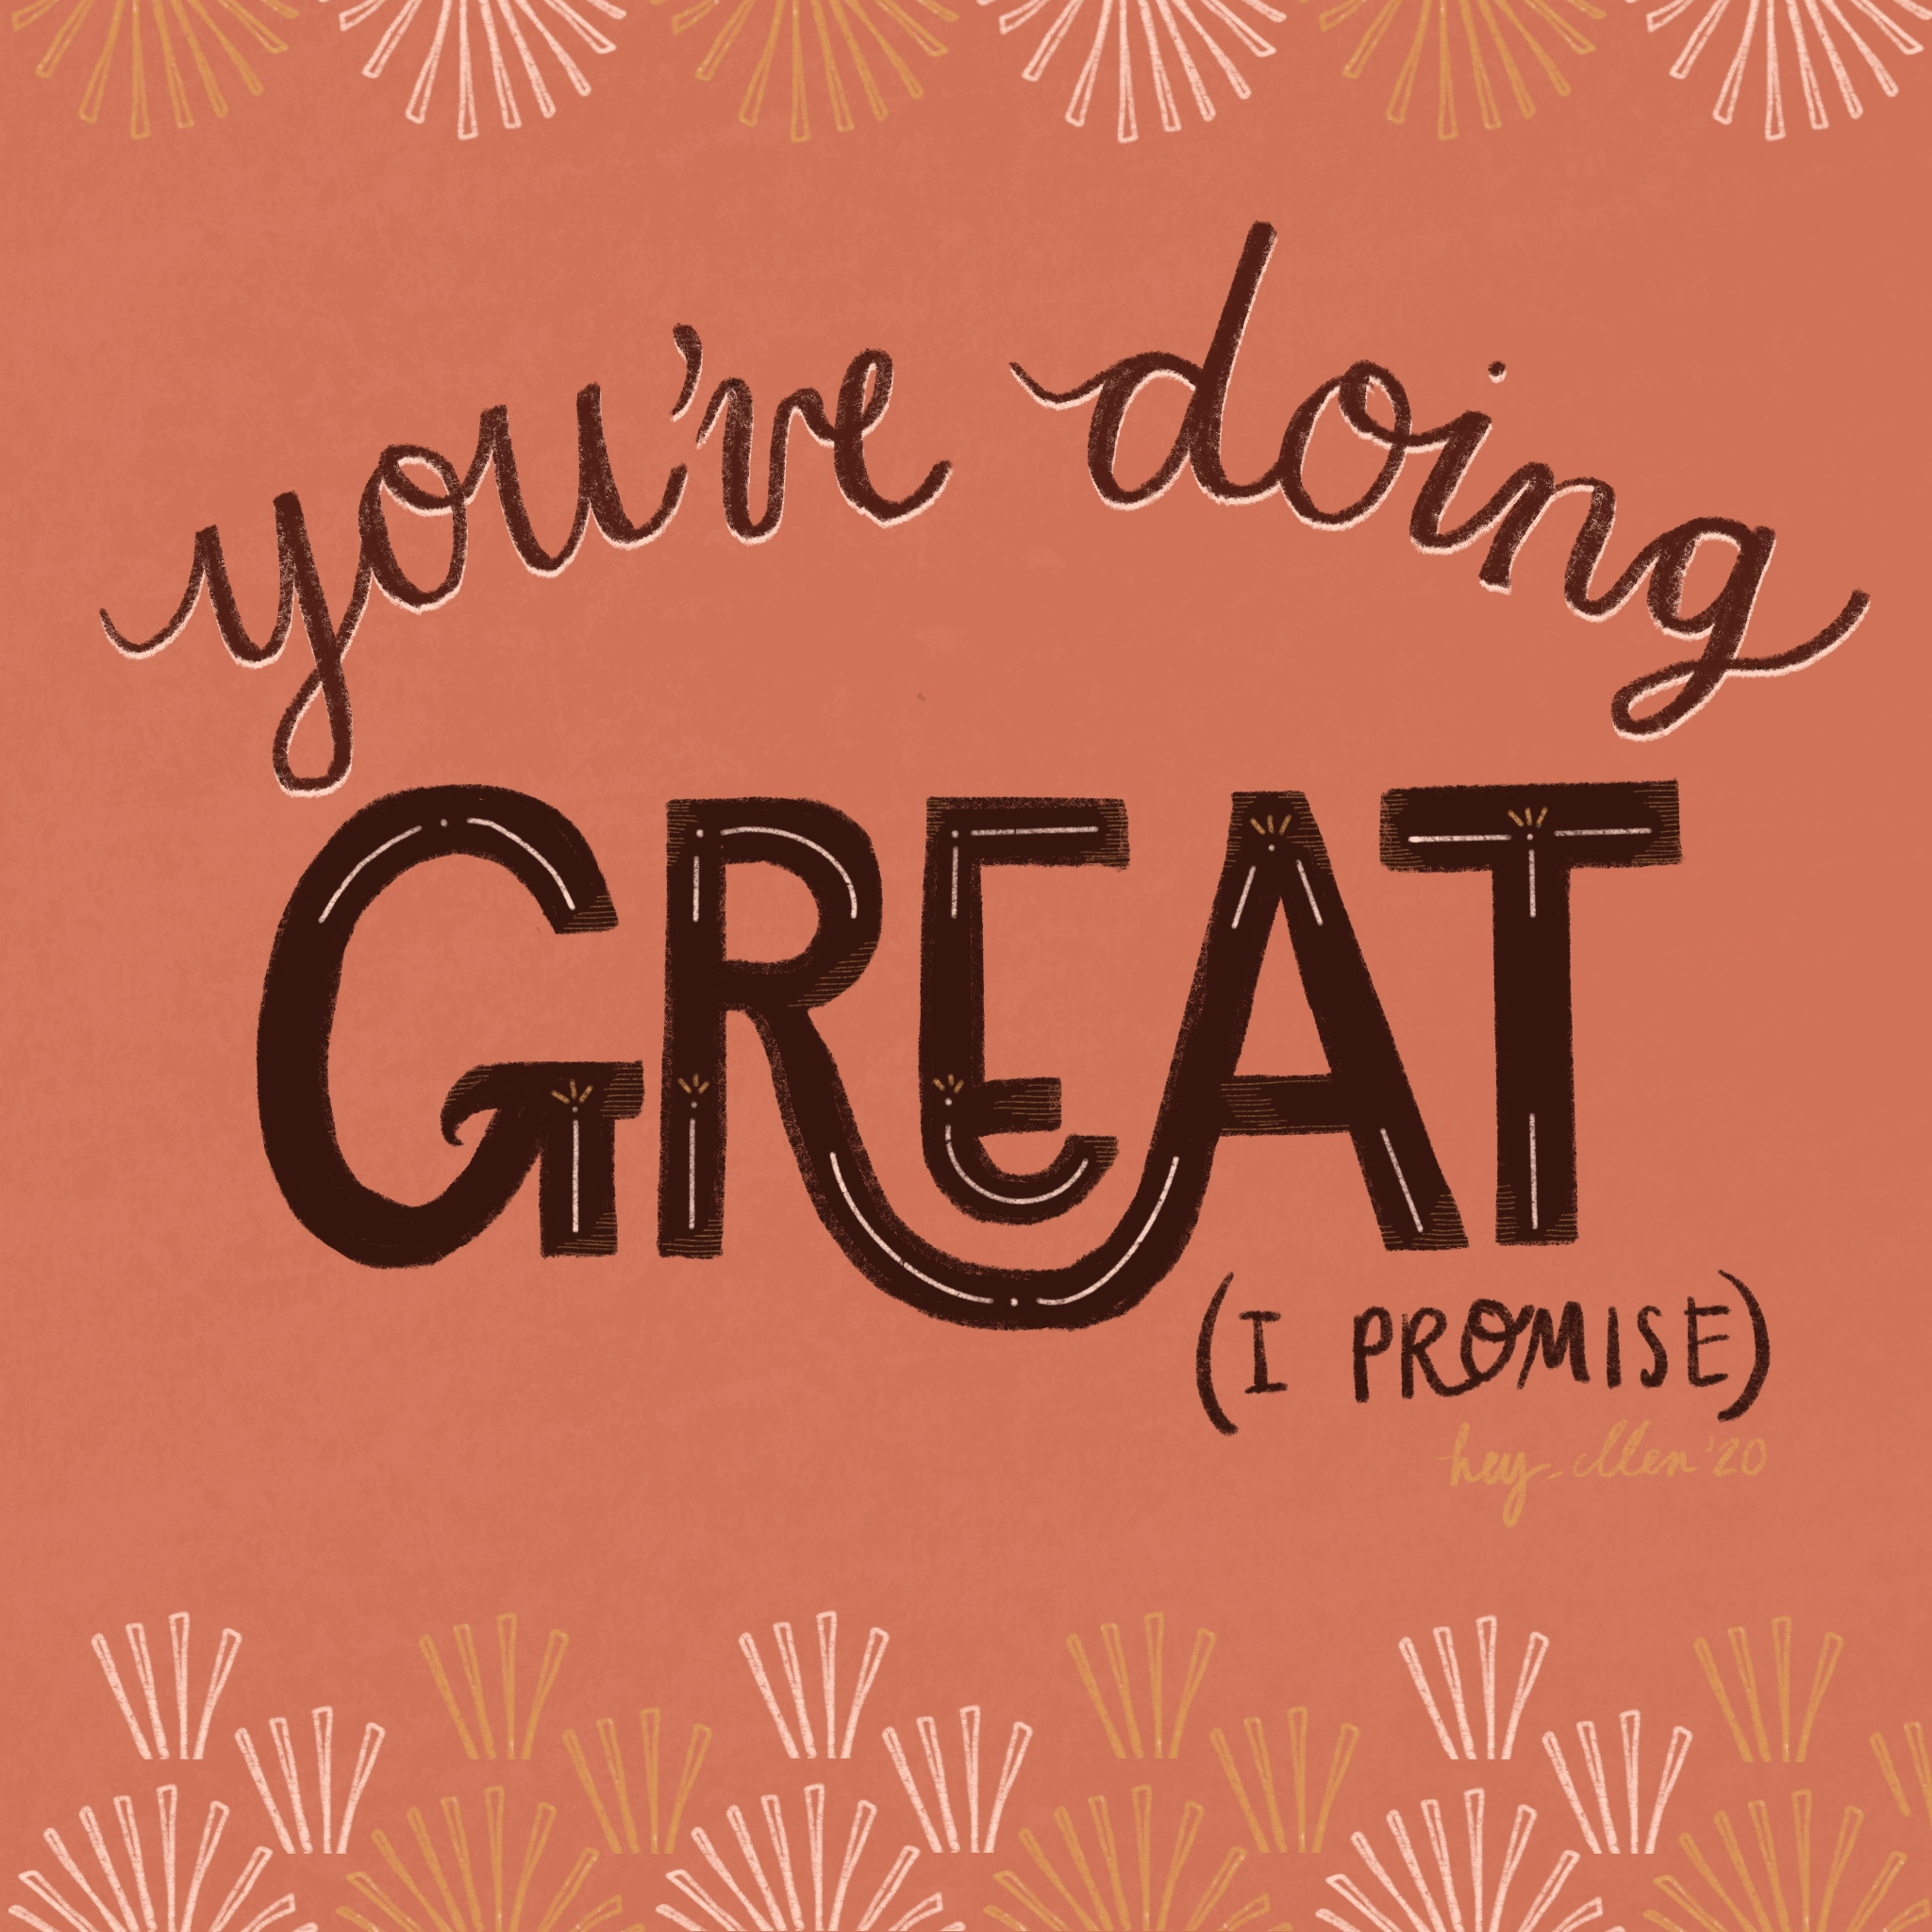 You're doing Great – Ellen Heydenrych, 2020.